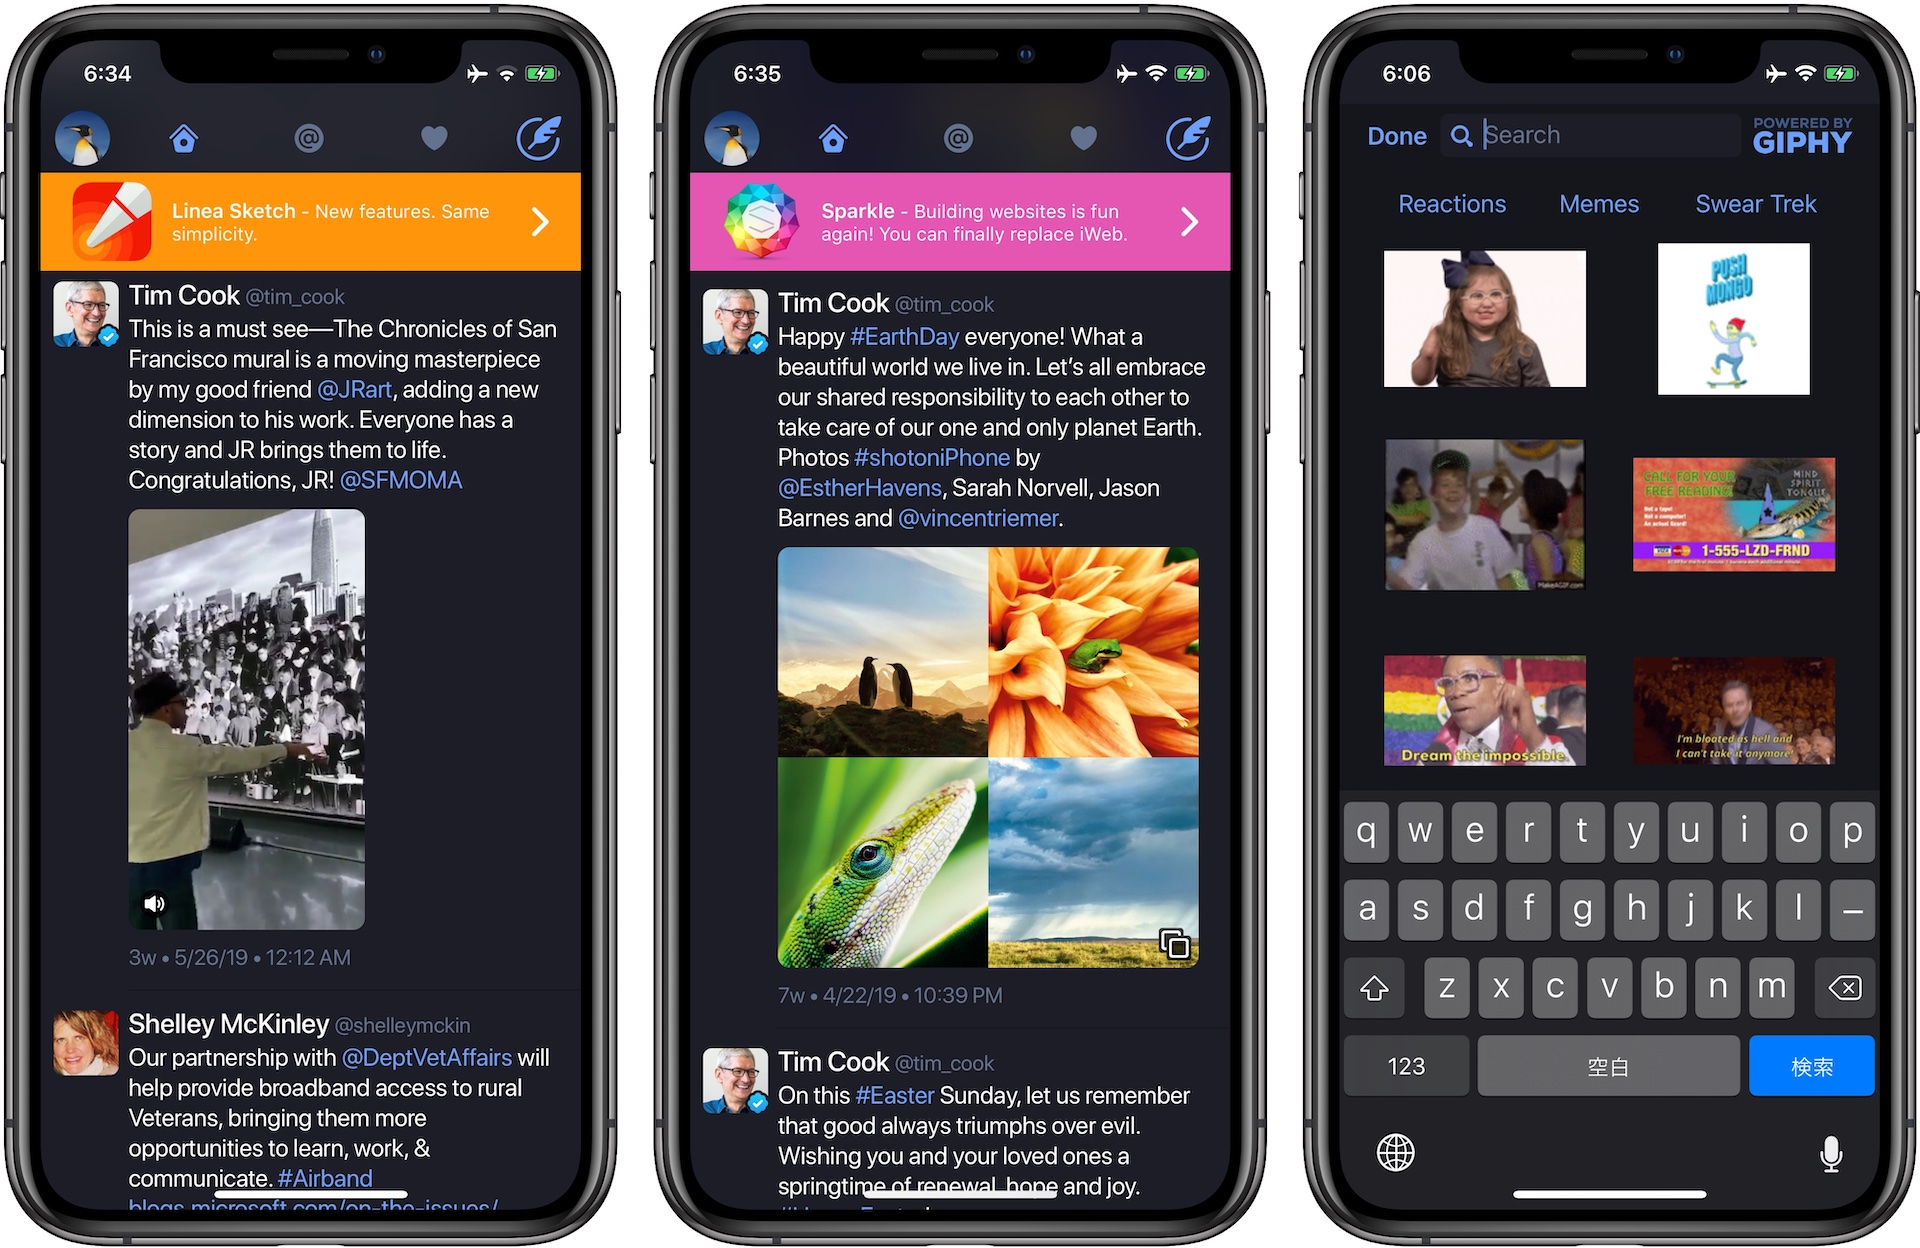 Twitterrific 6.0 for iOSの画像機能